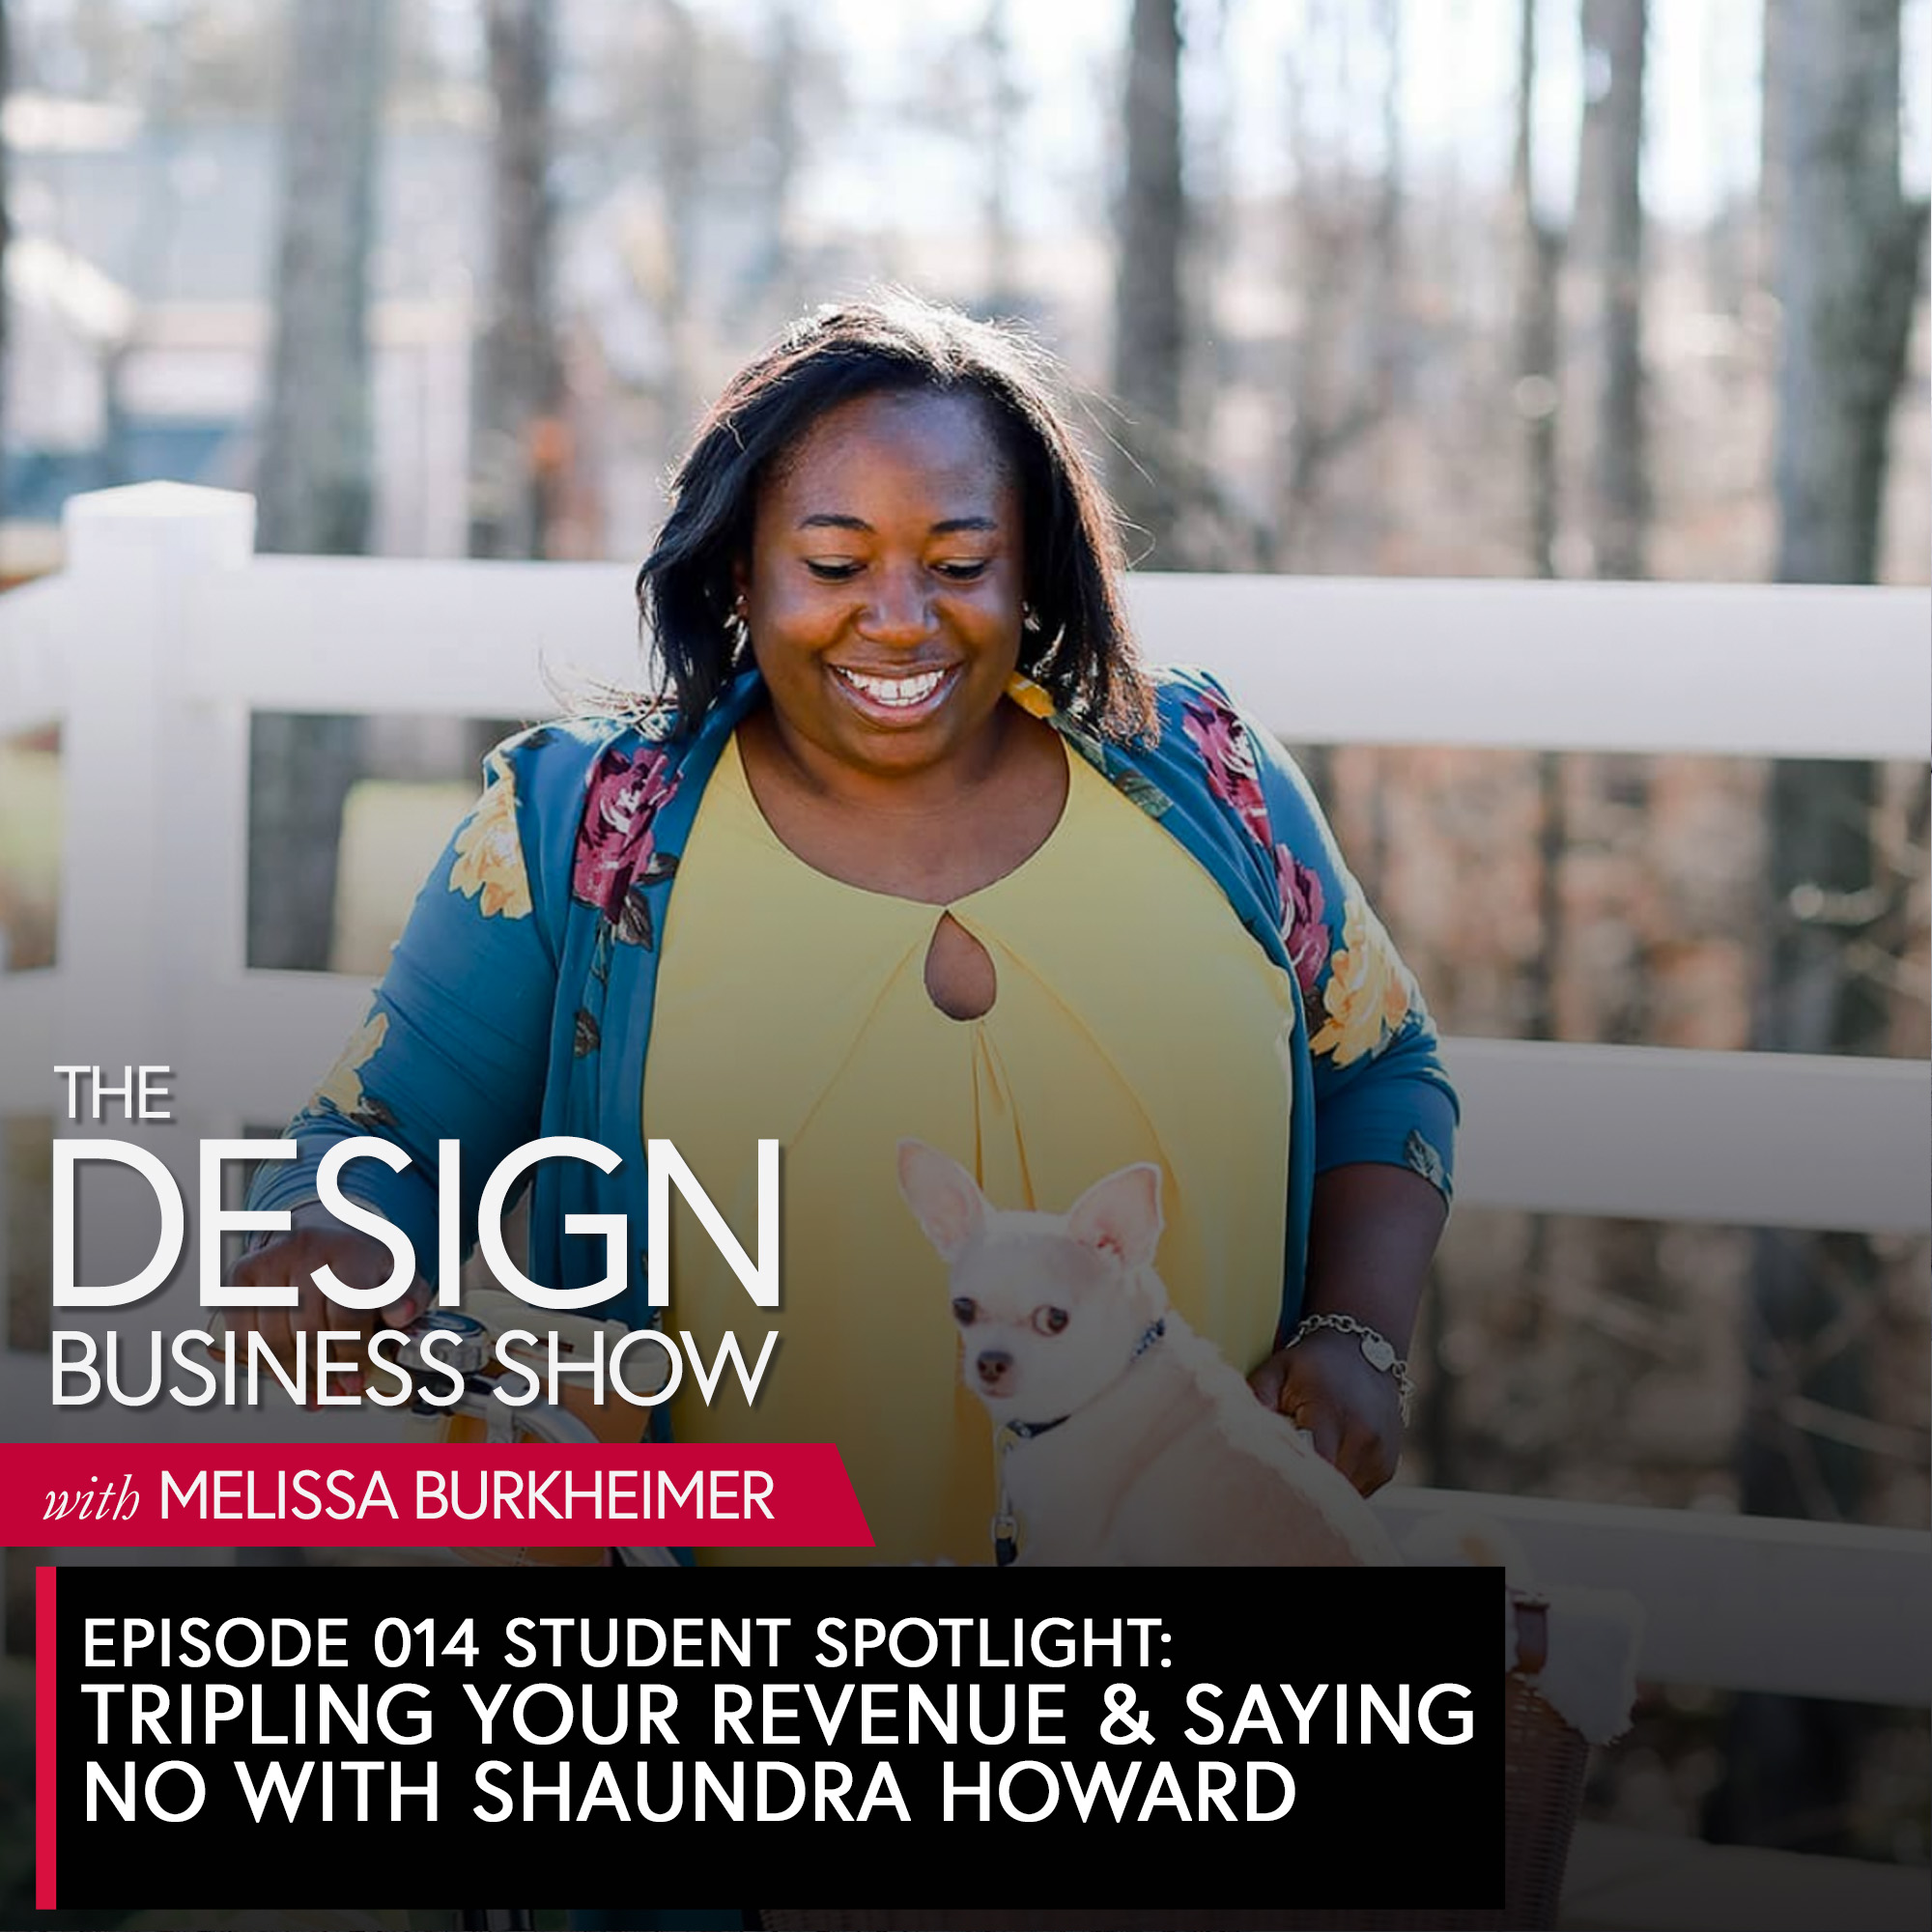 Learn how Shaundra Howard went from working with random design clients to shifting her services and tripling her revenue.